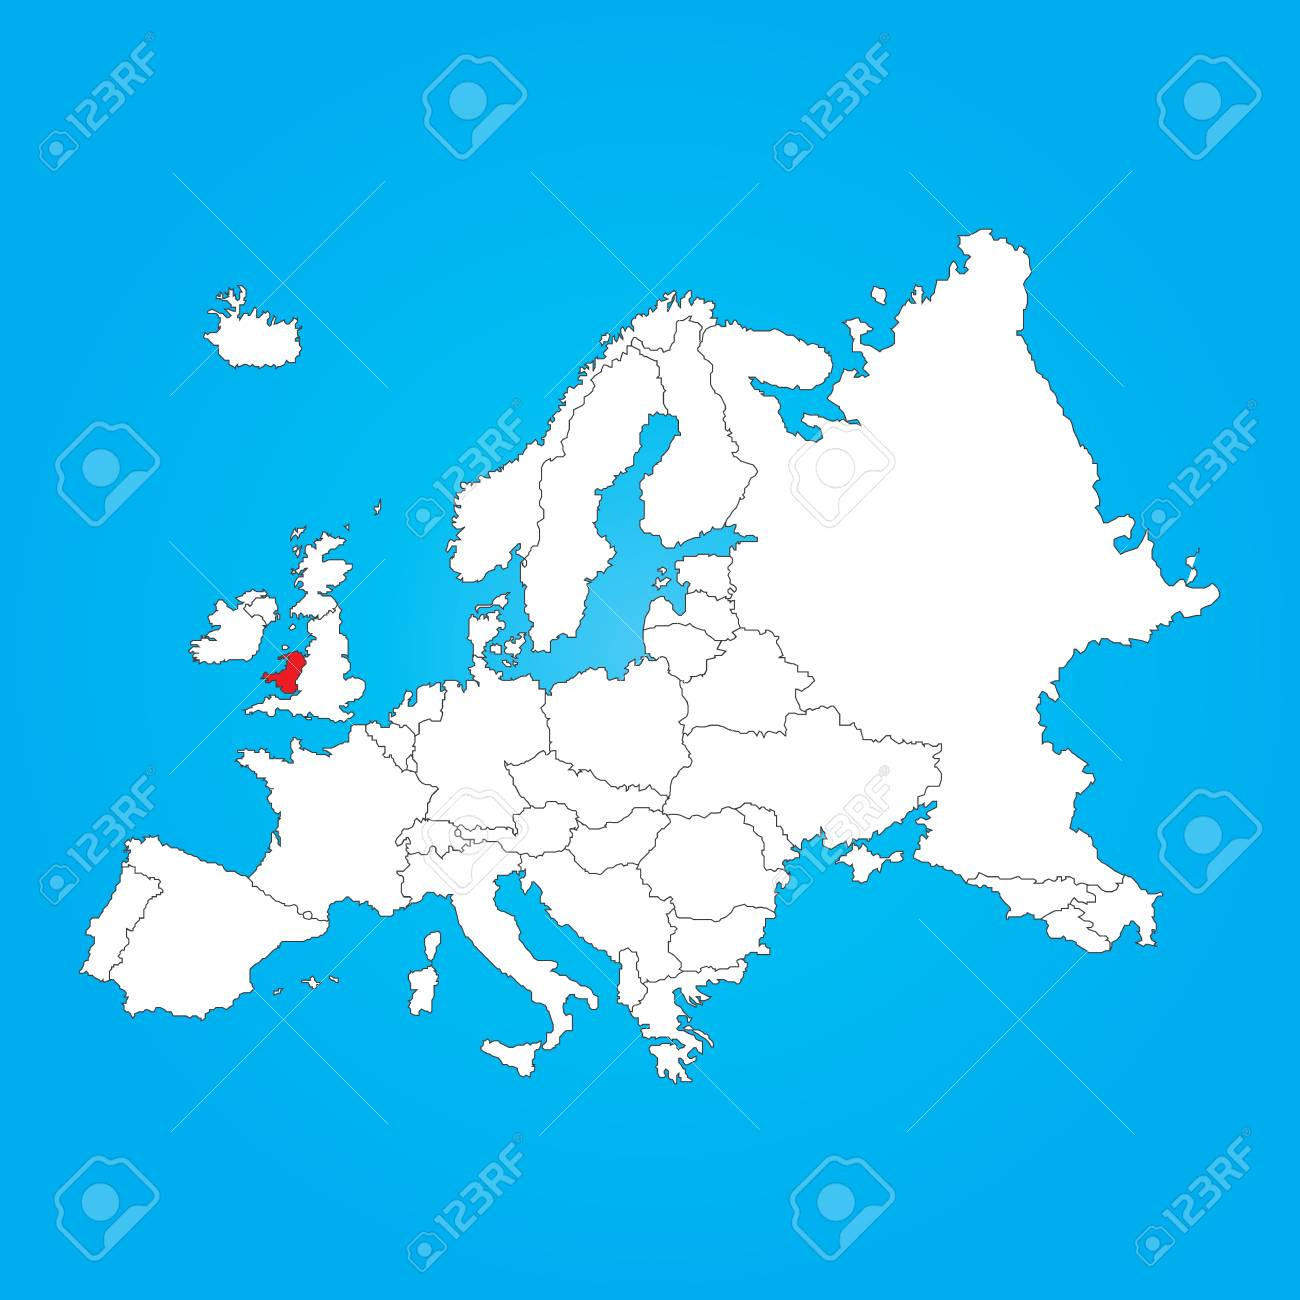 A Map Of Europe With A Selected Country Ofwales intérieur Carte D Europe Avec Pays